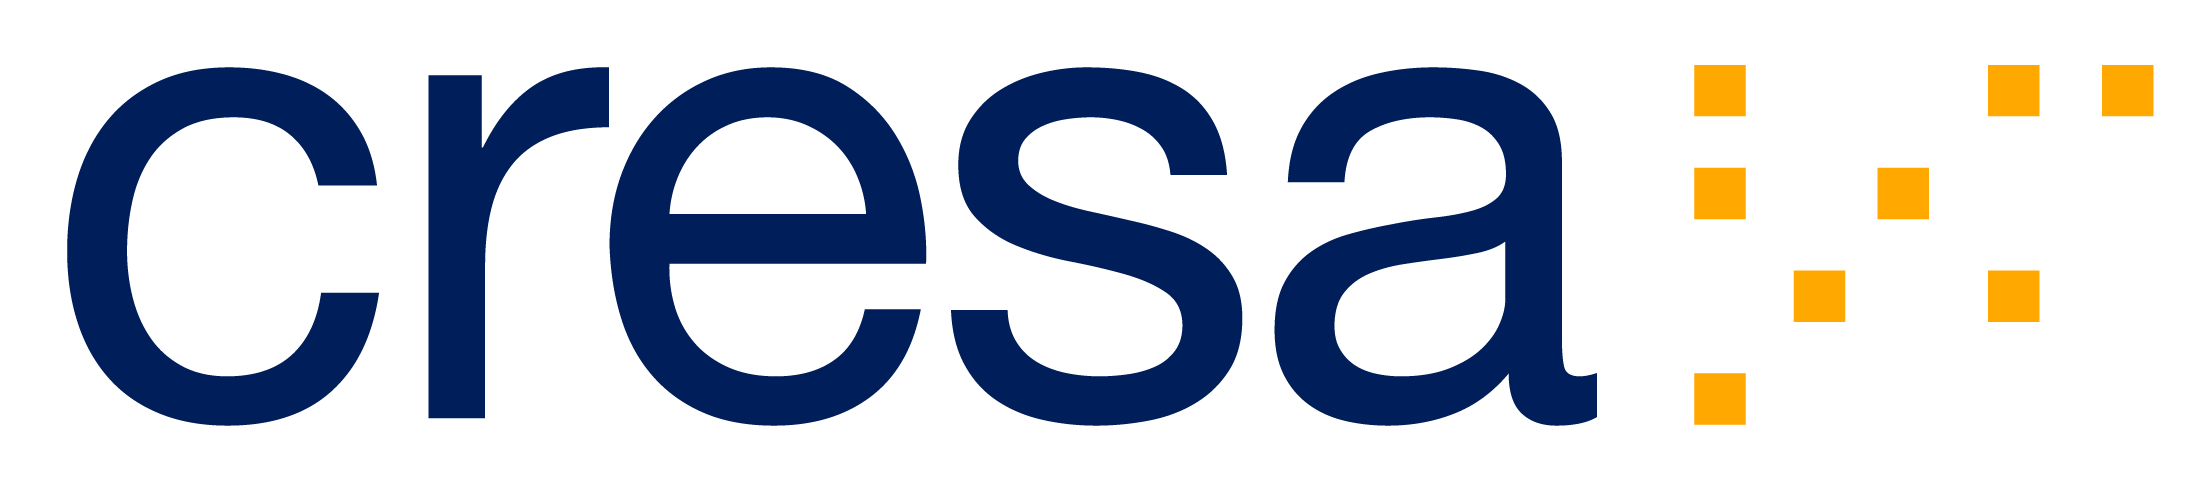 Cresa Logo Transparent